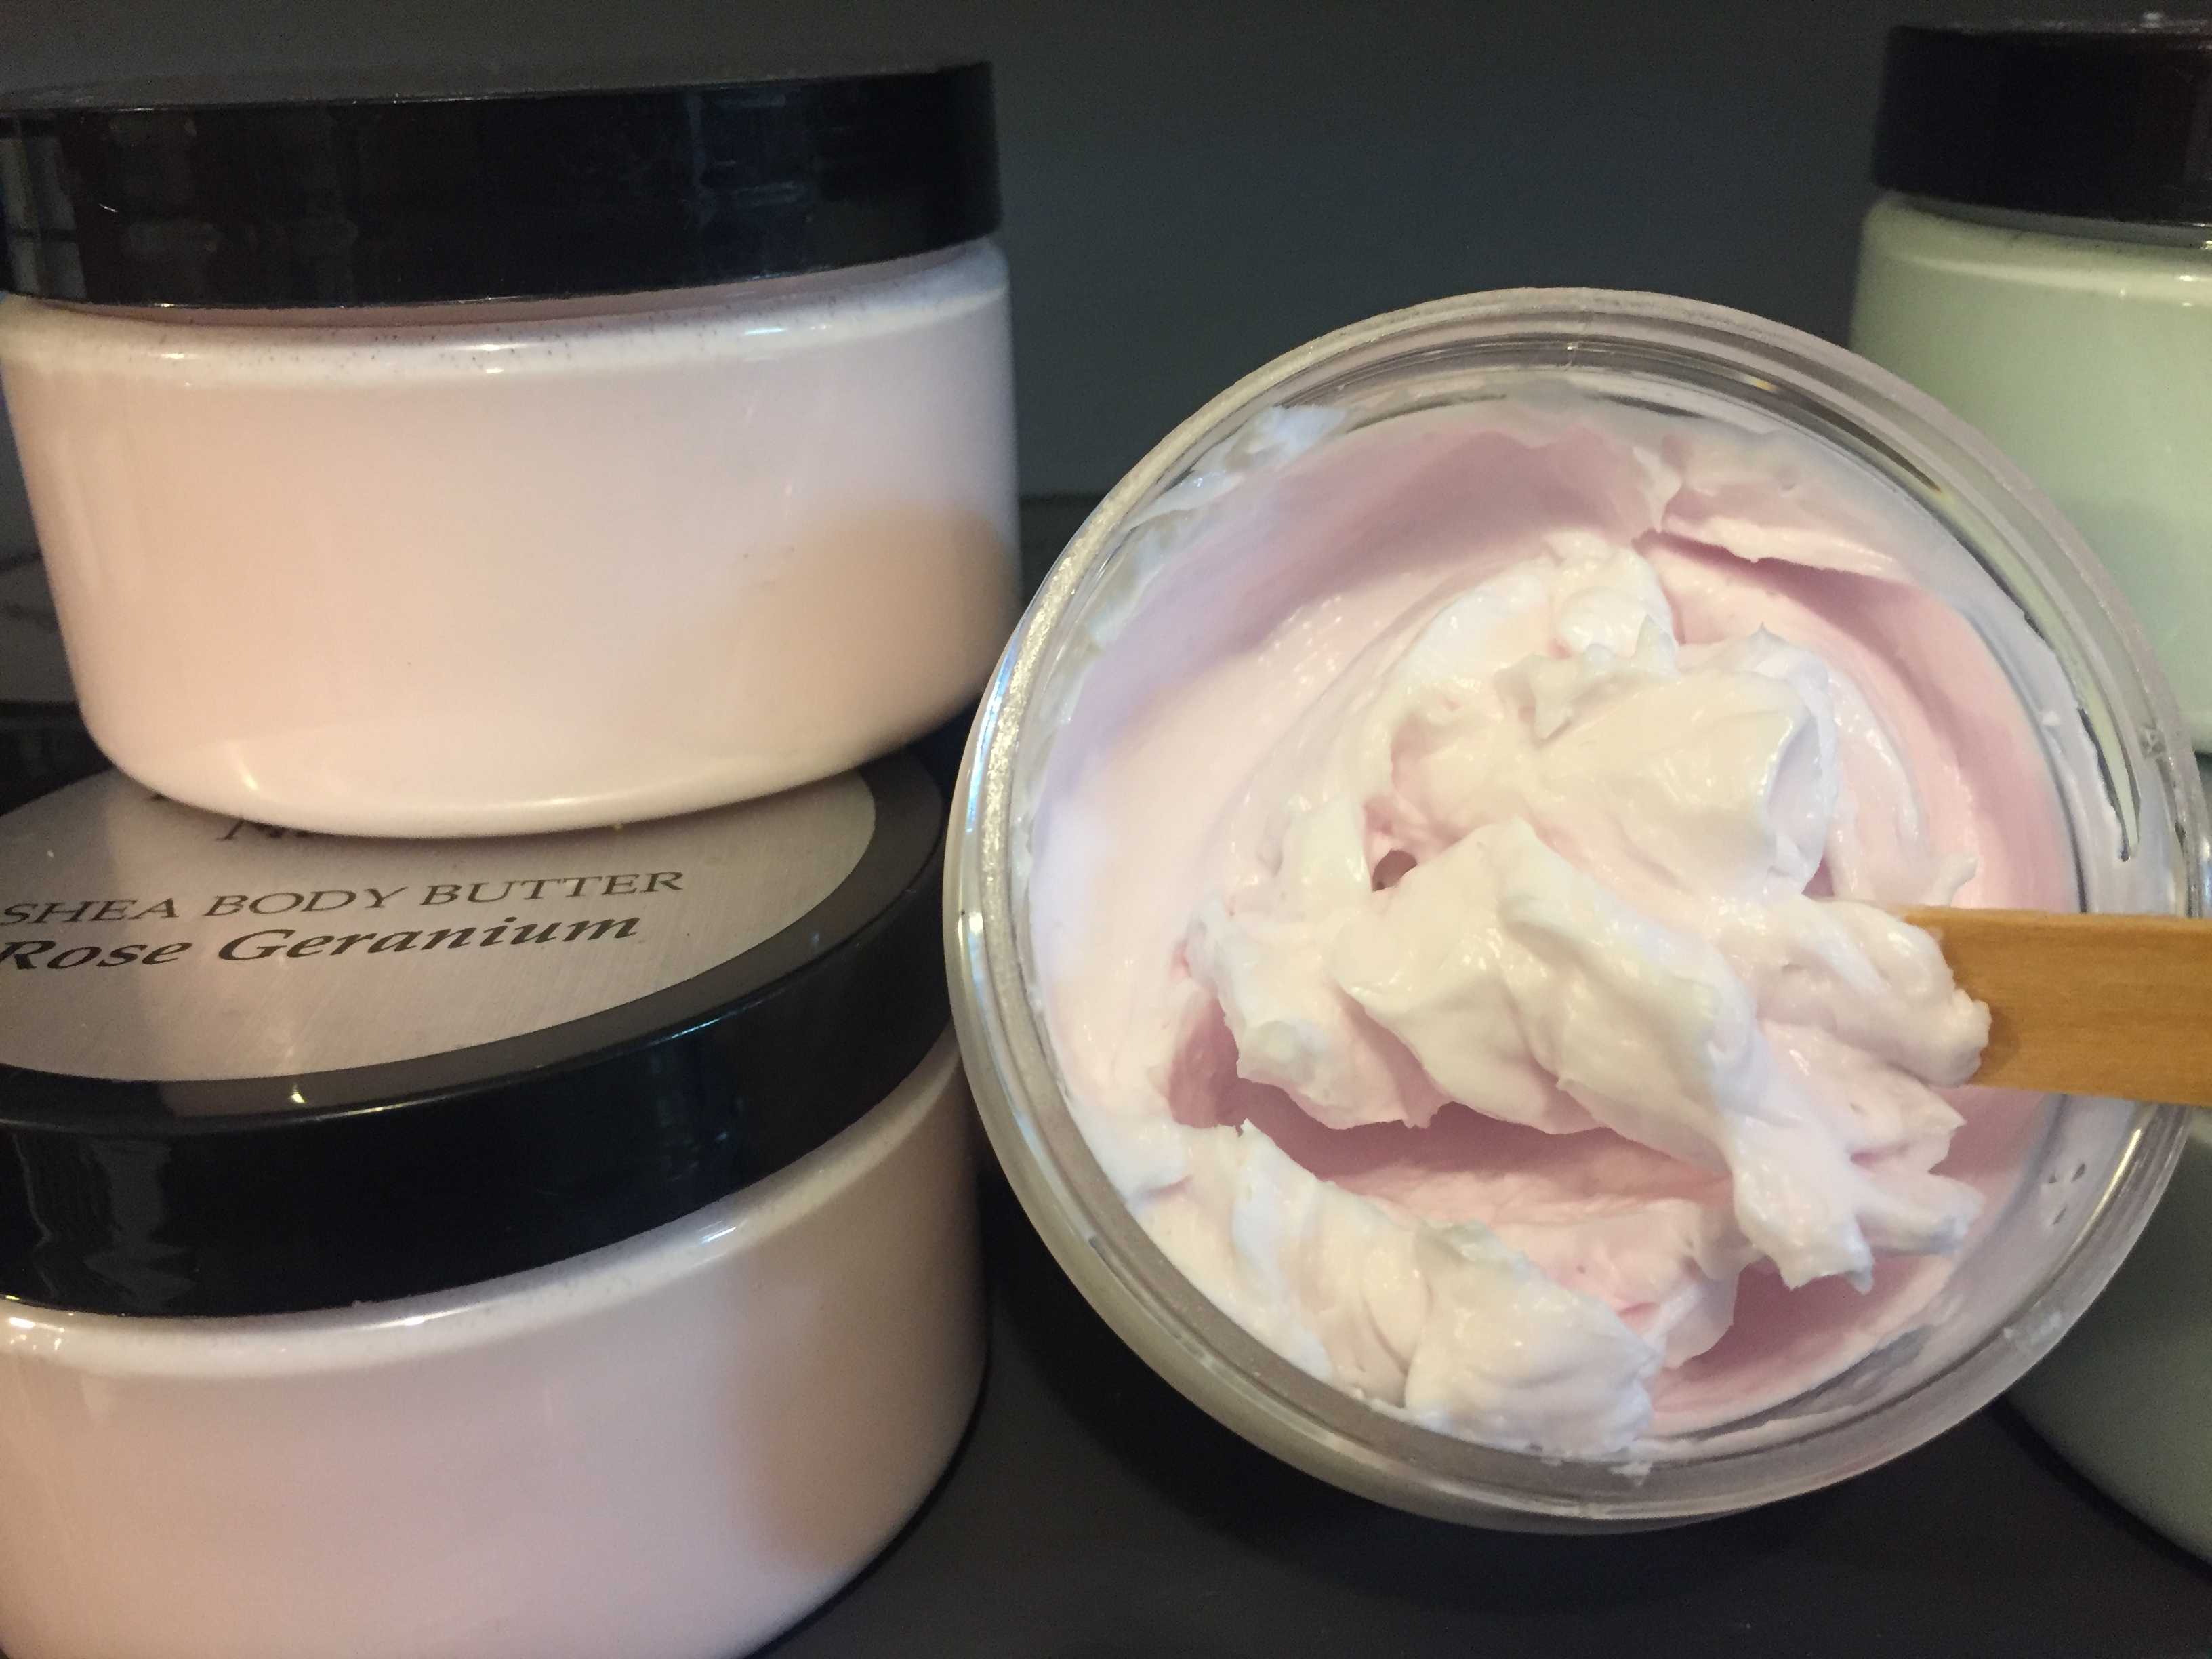 Divine Goddess Body Butter The Awakened Cream 1495